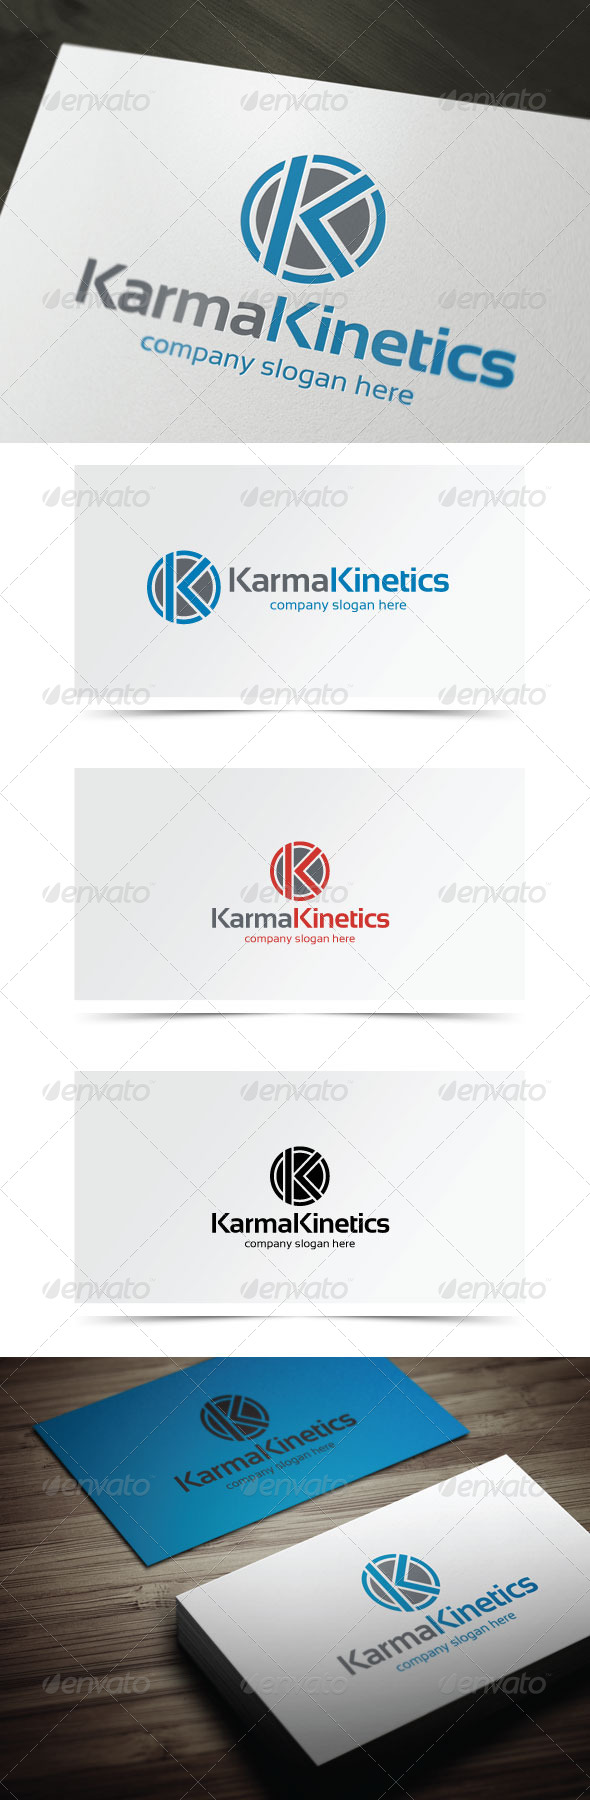 GraphicRiver Karma Kinetics 6289029